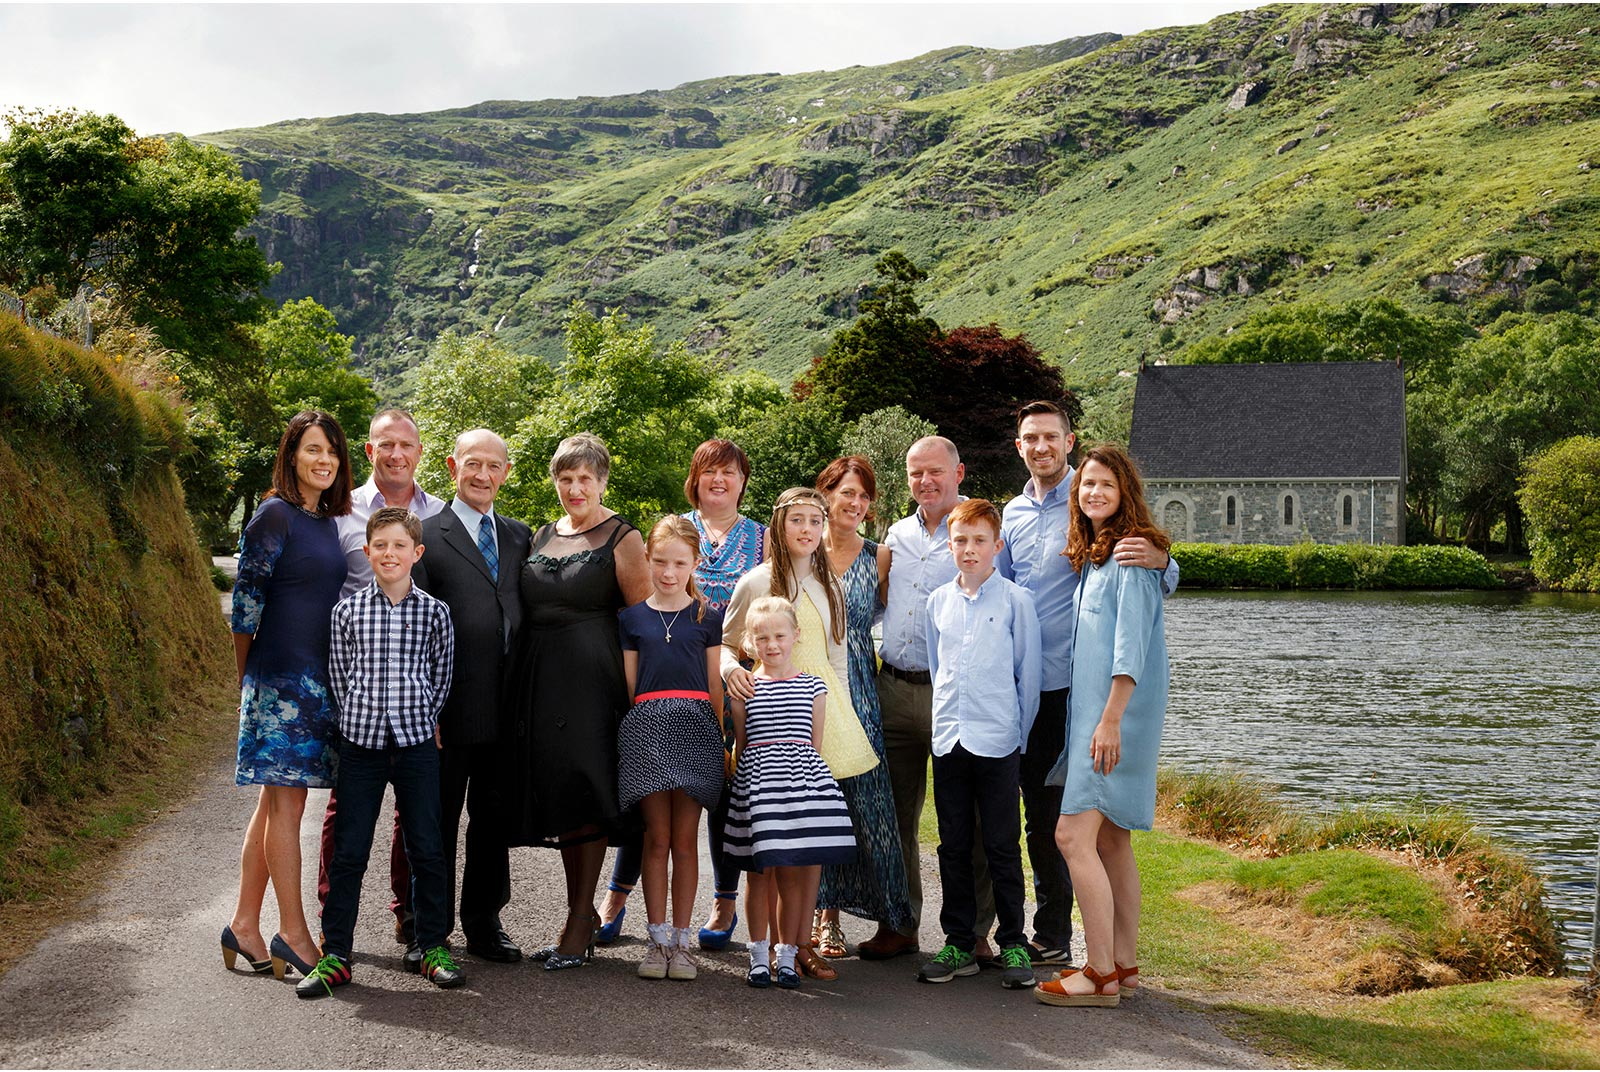 3 generations in family photograph at Gougane Barra